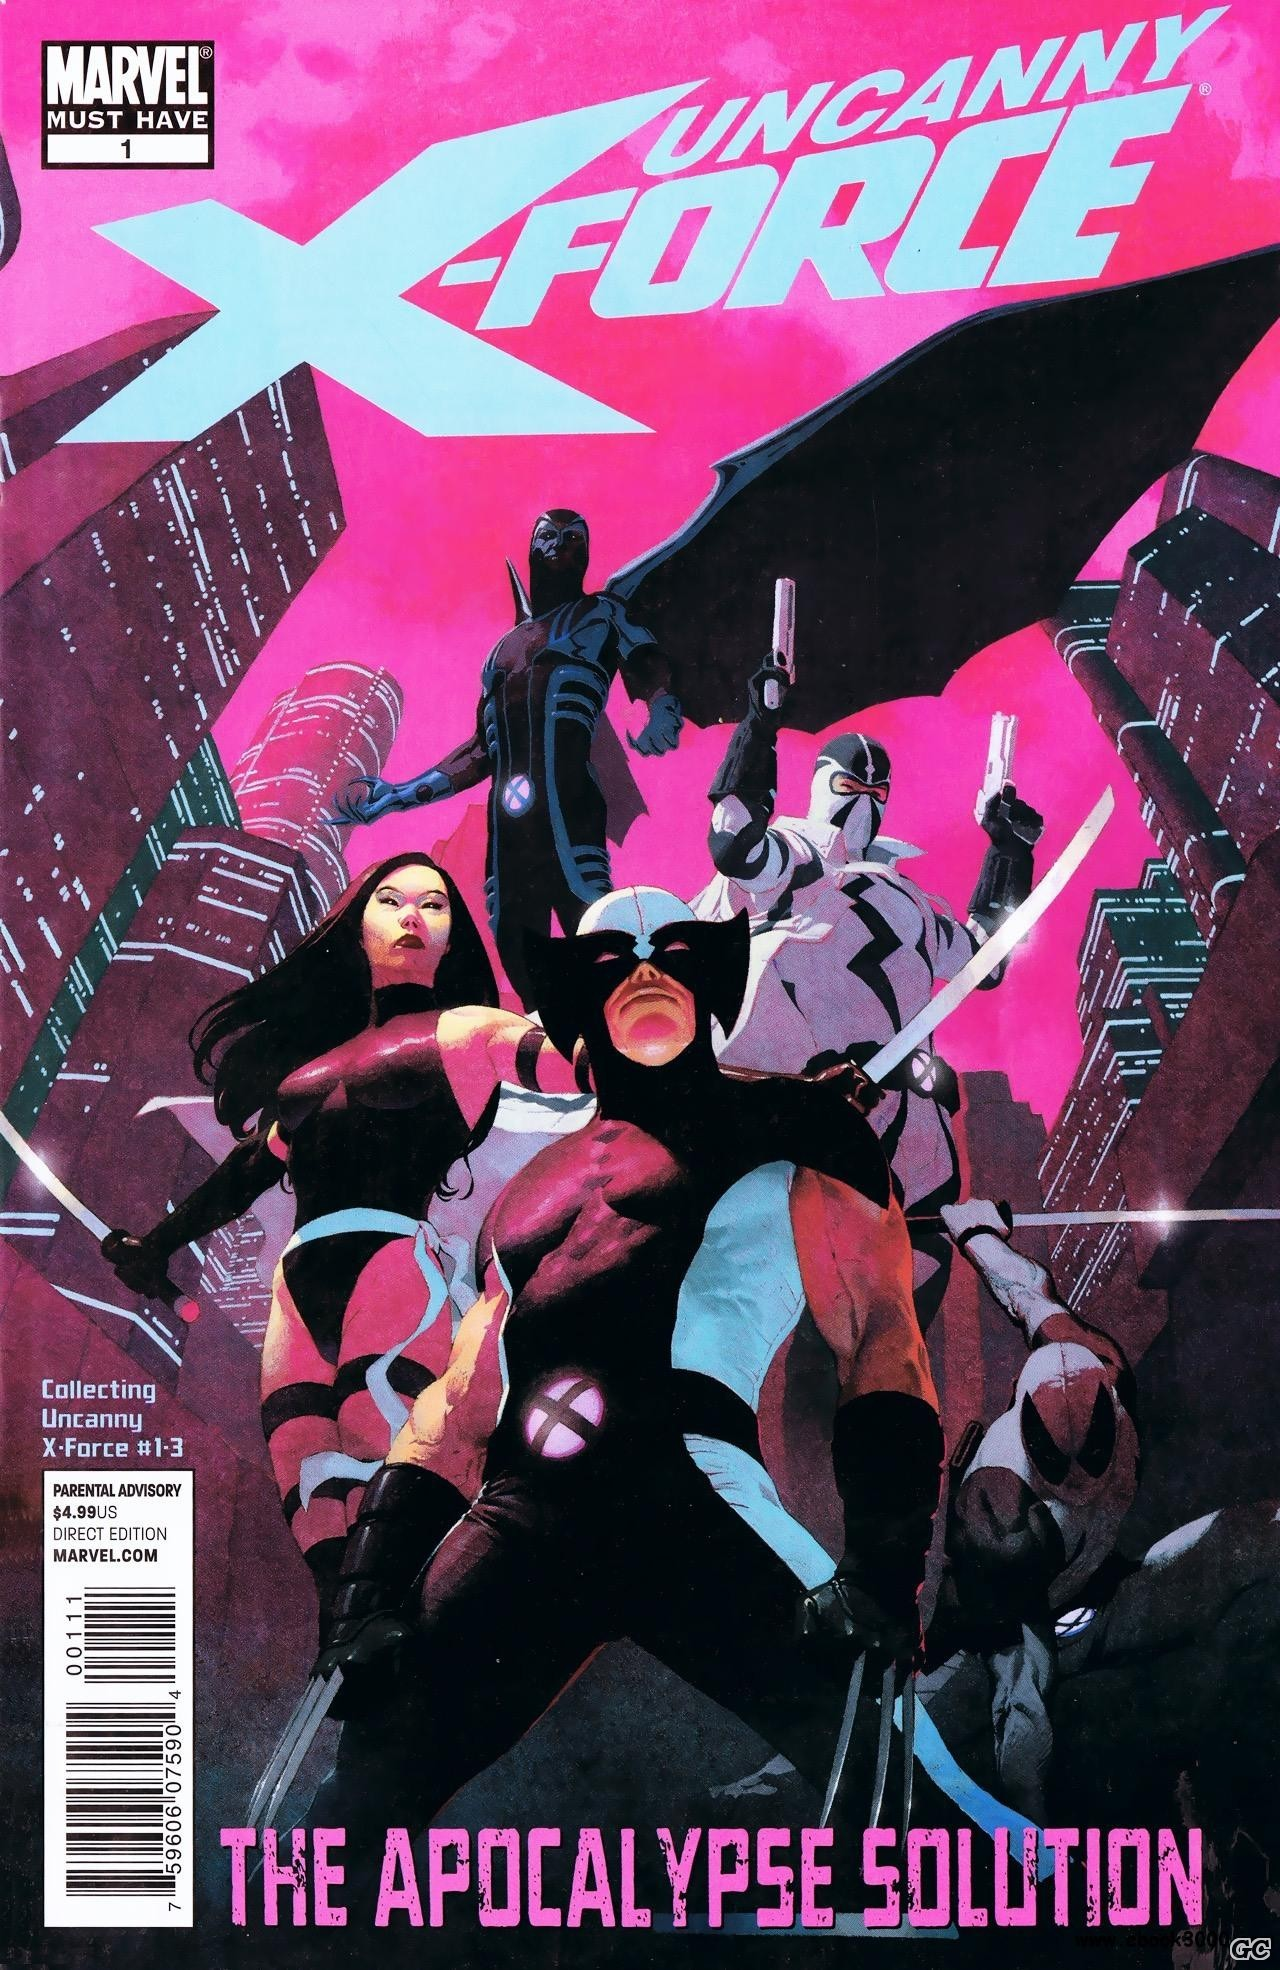 UNCANNY X-FORCE THE APOCALYPSE SOLUTION (RICK REMENDER-JEROM OPENA)